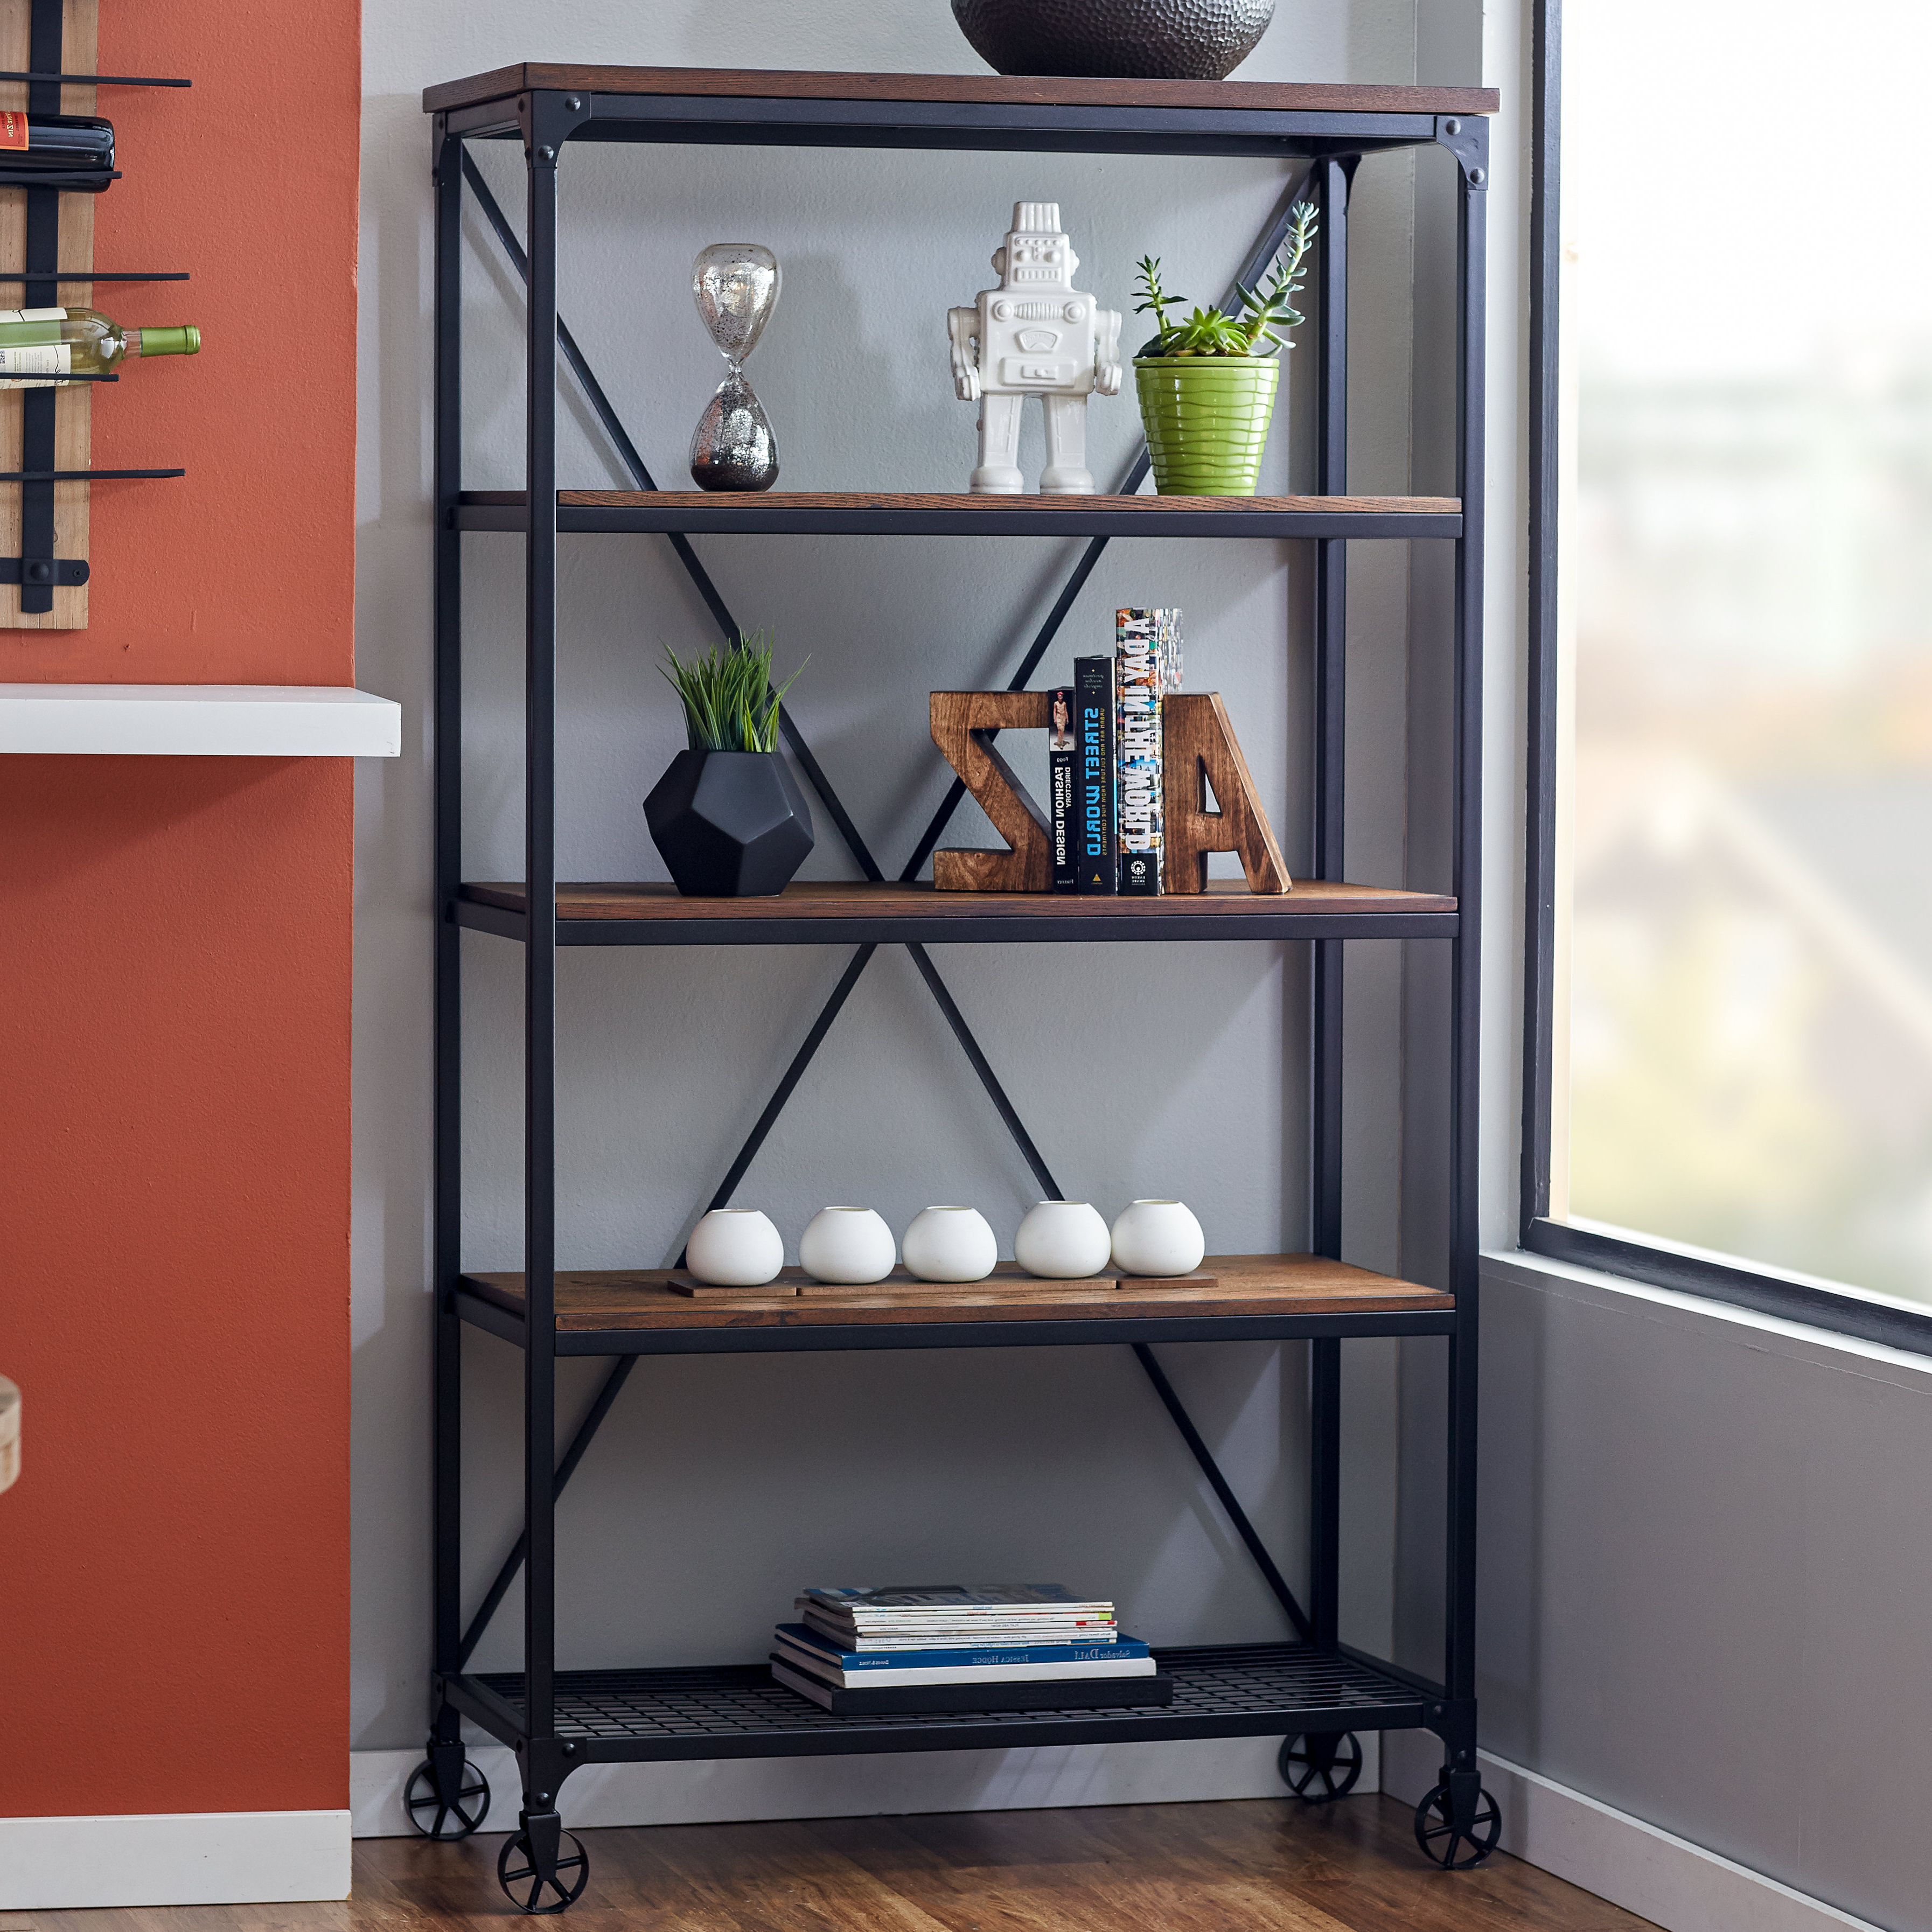 Rocklin Etagere Bookcases Regarding Best And Newest Williston Forge Kilmersdon Etagere Bookcase & Reviews (View 16 of 20)